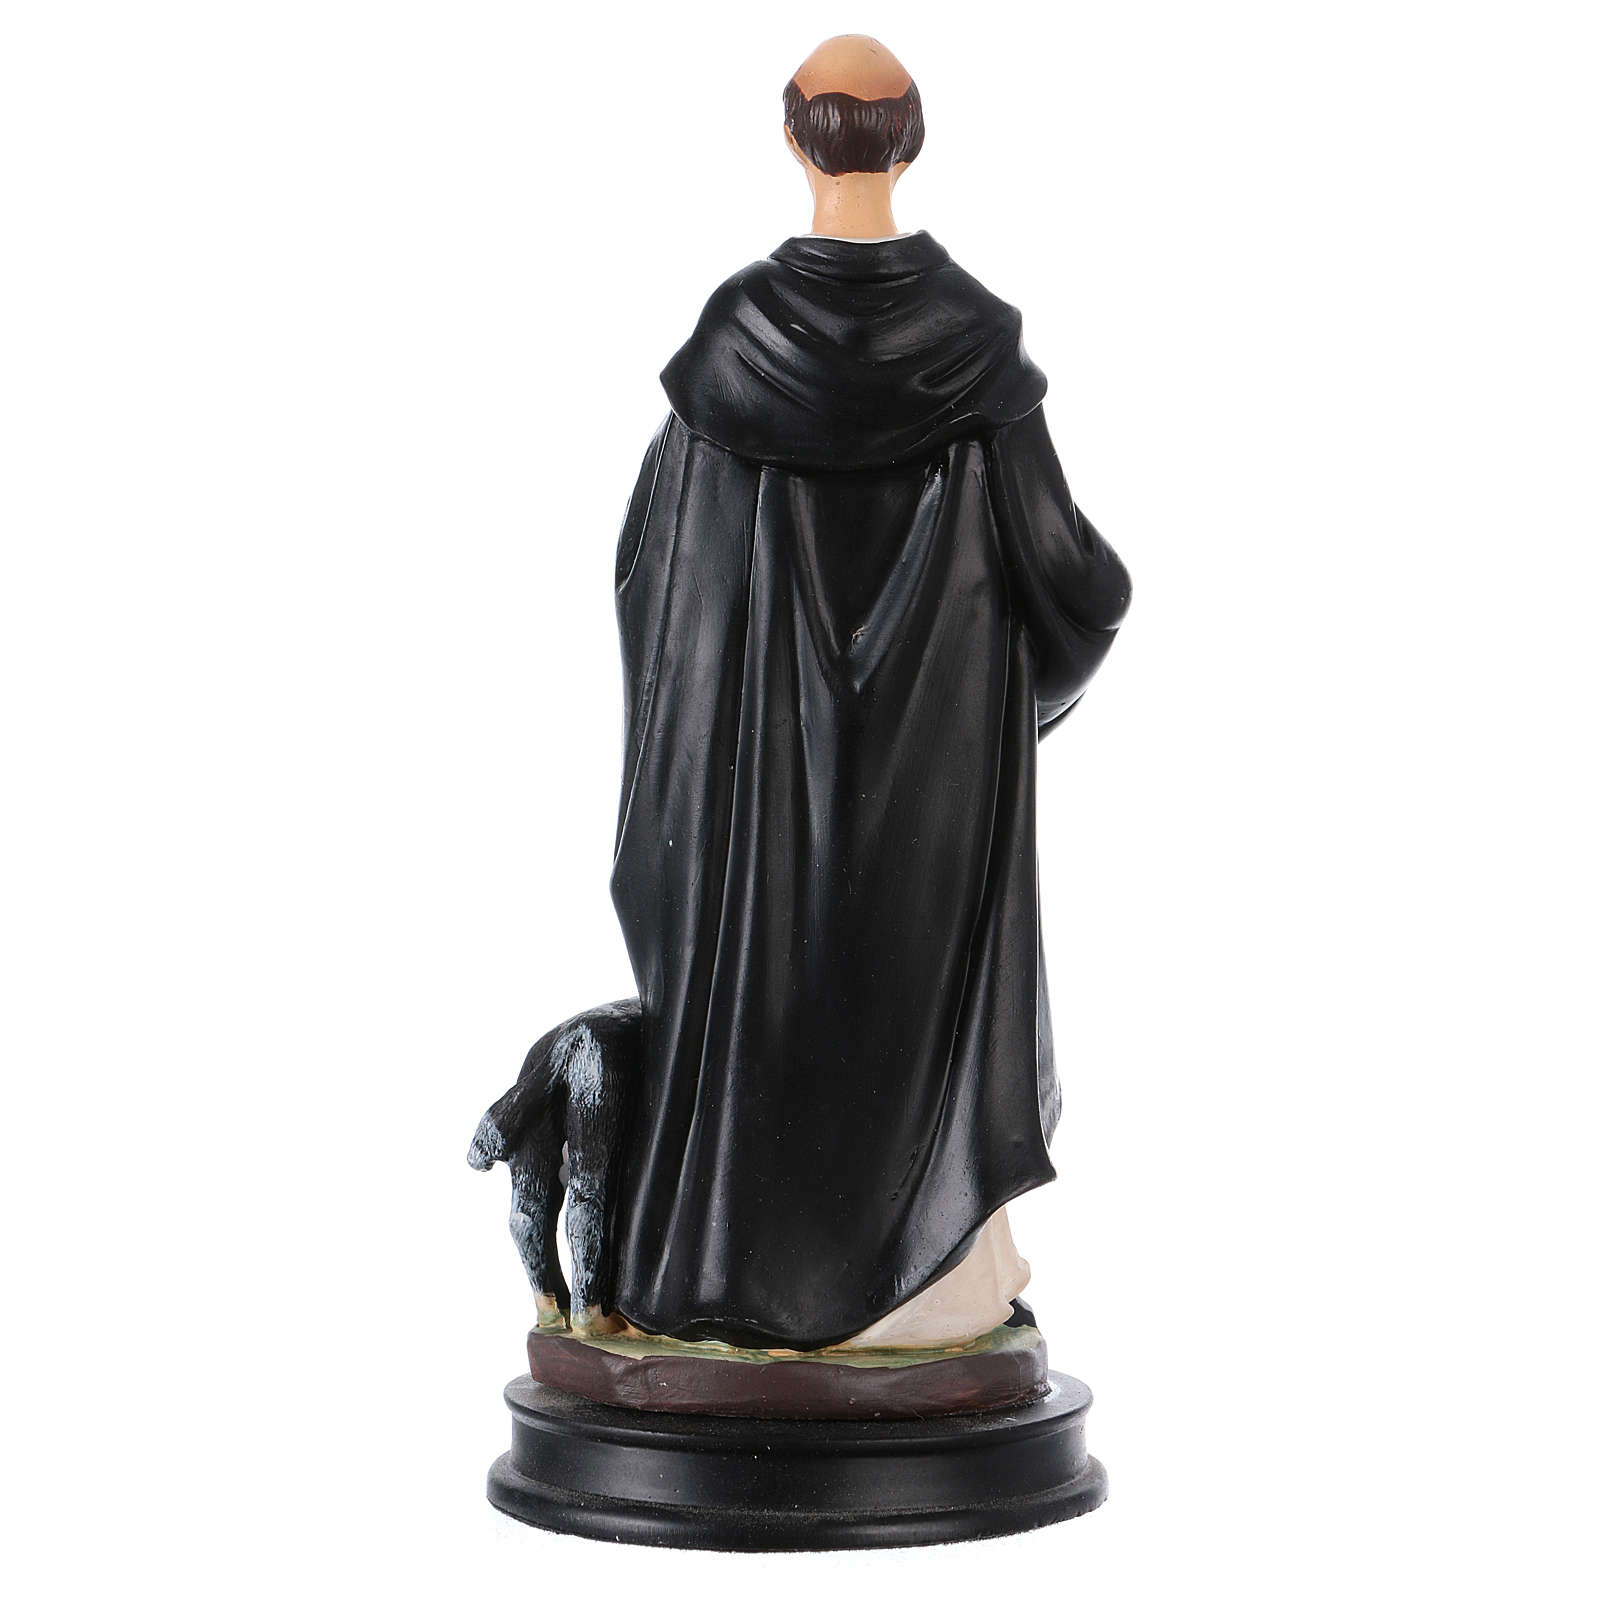 STOCK resin Saint Dominic statue 13 cm 4